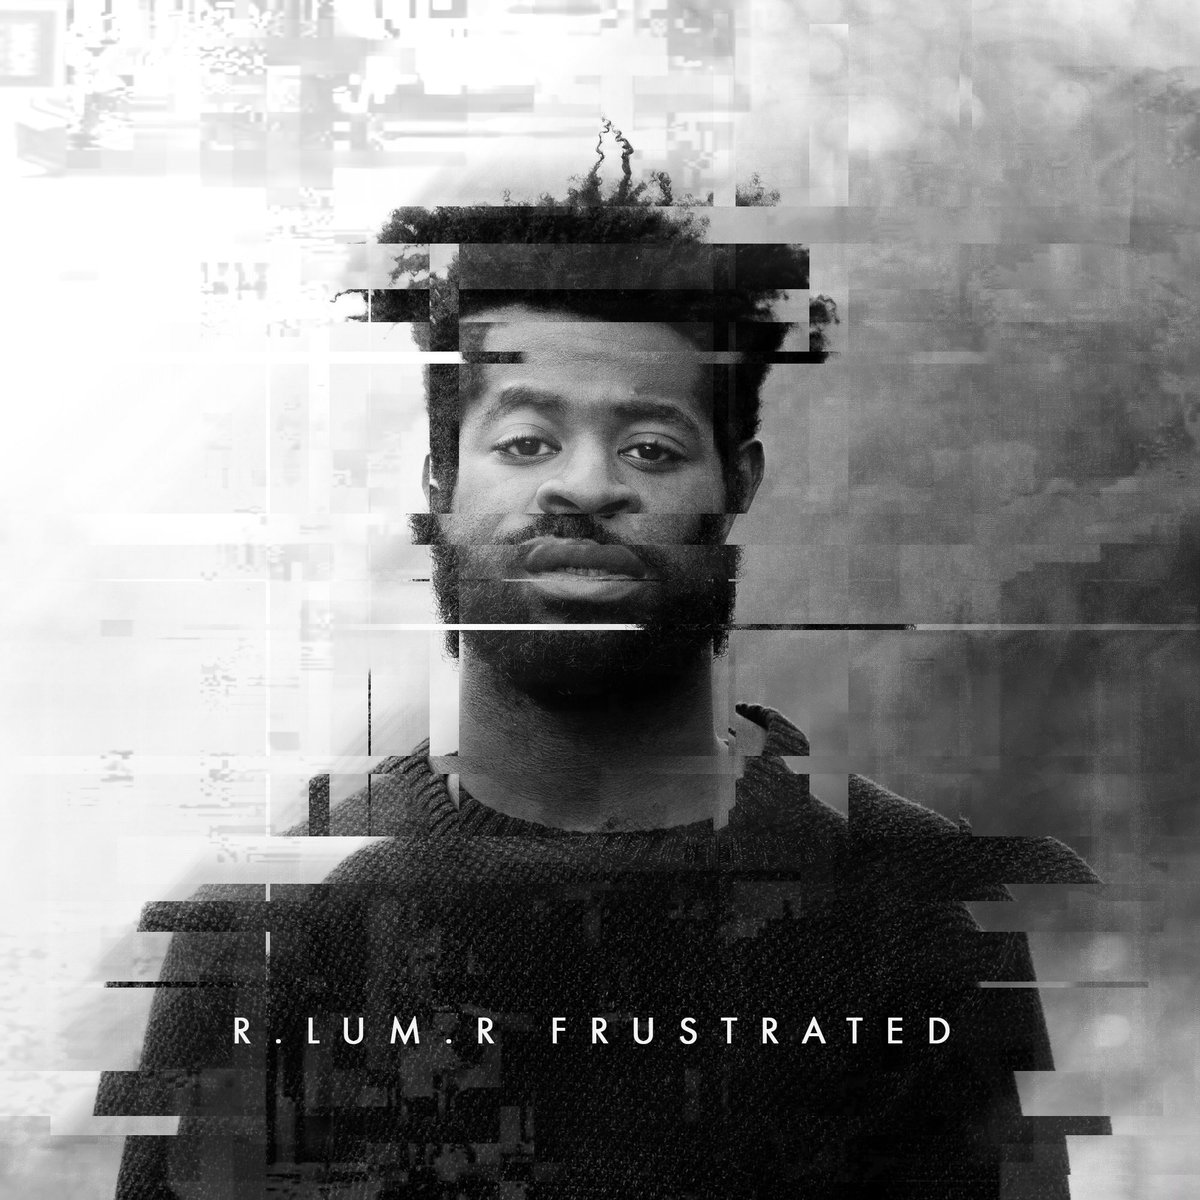 """@ChloeGMoretz I know you love finding new music. Check out my friend @werlumr """"Frustrated"""""""